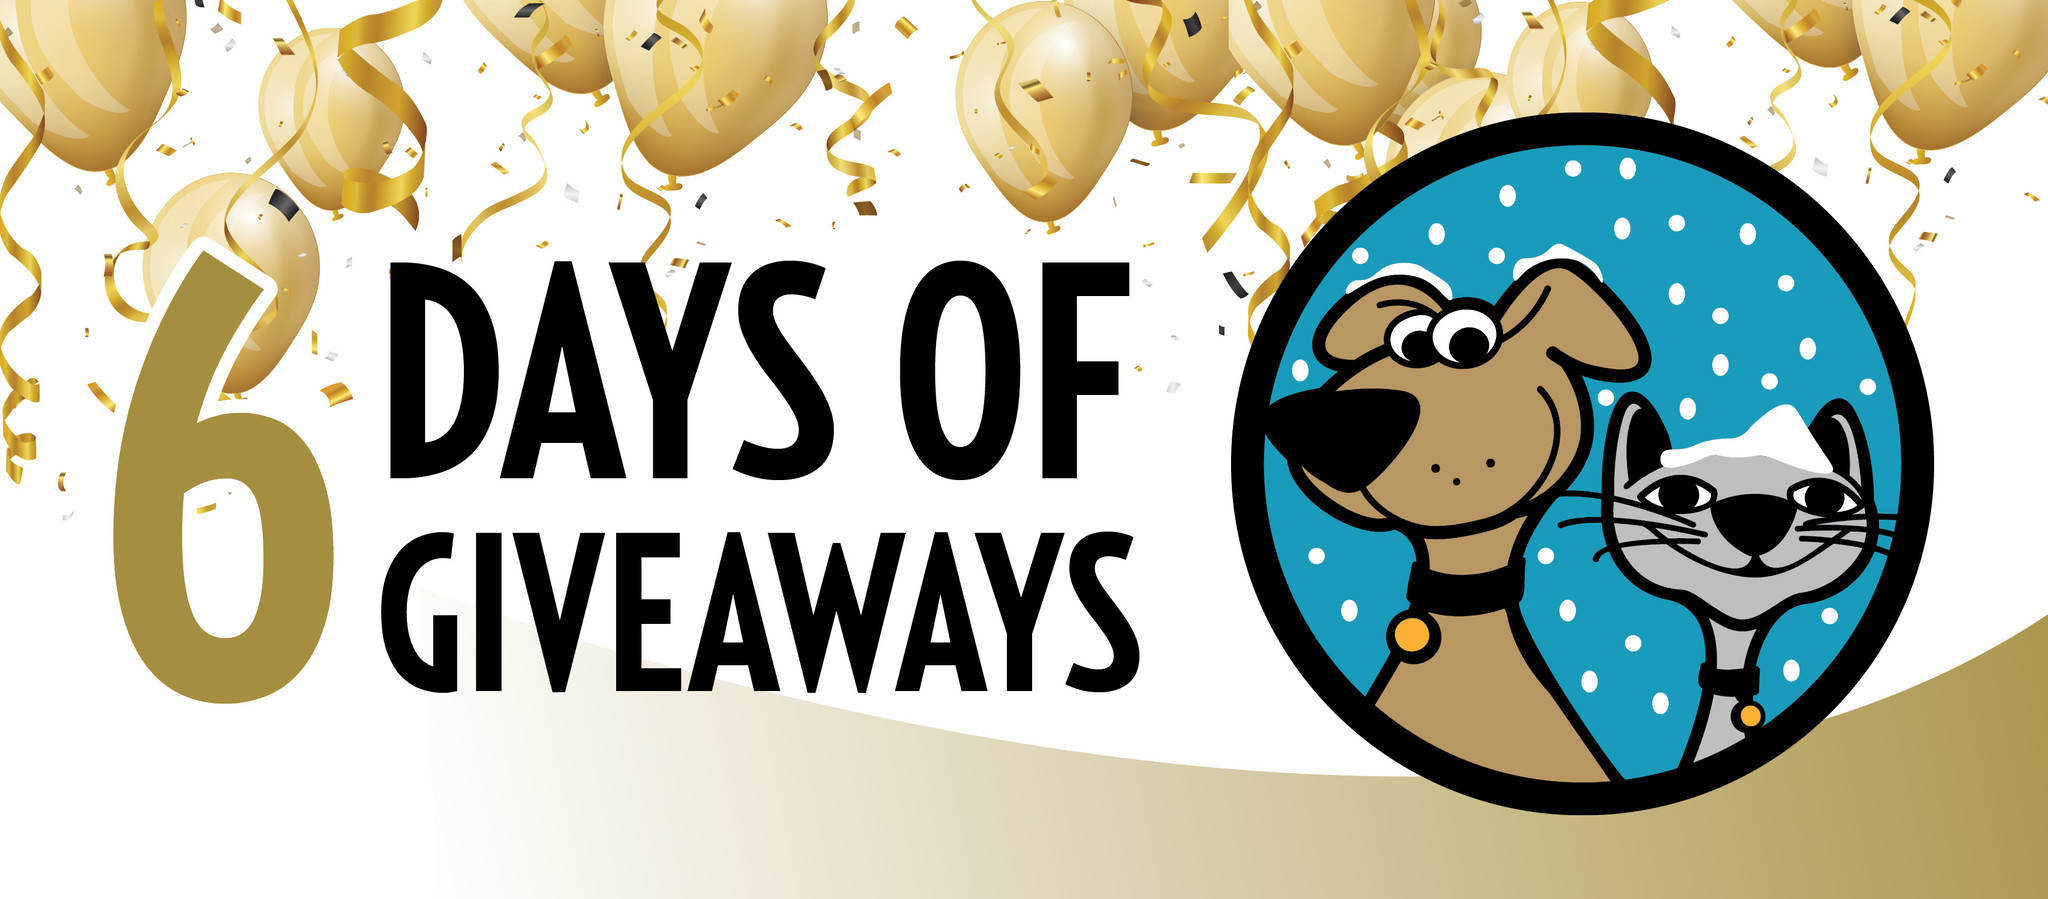 6 Days of Giveaways Contest